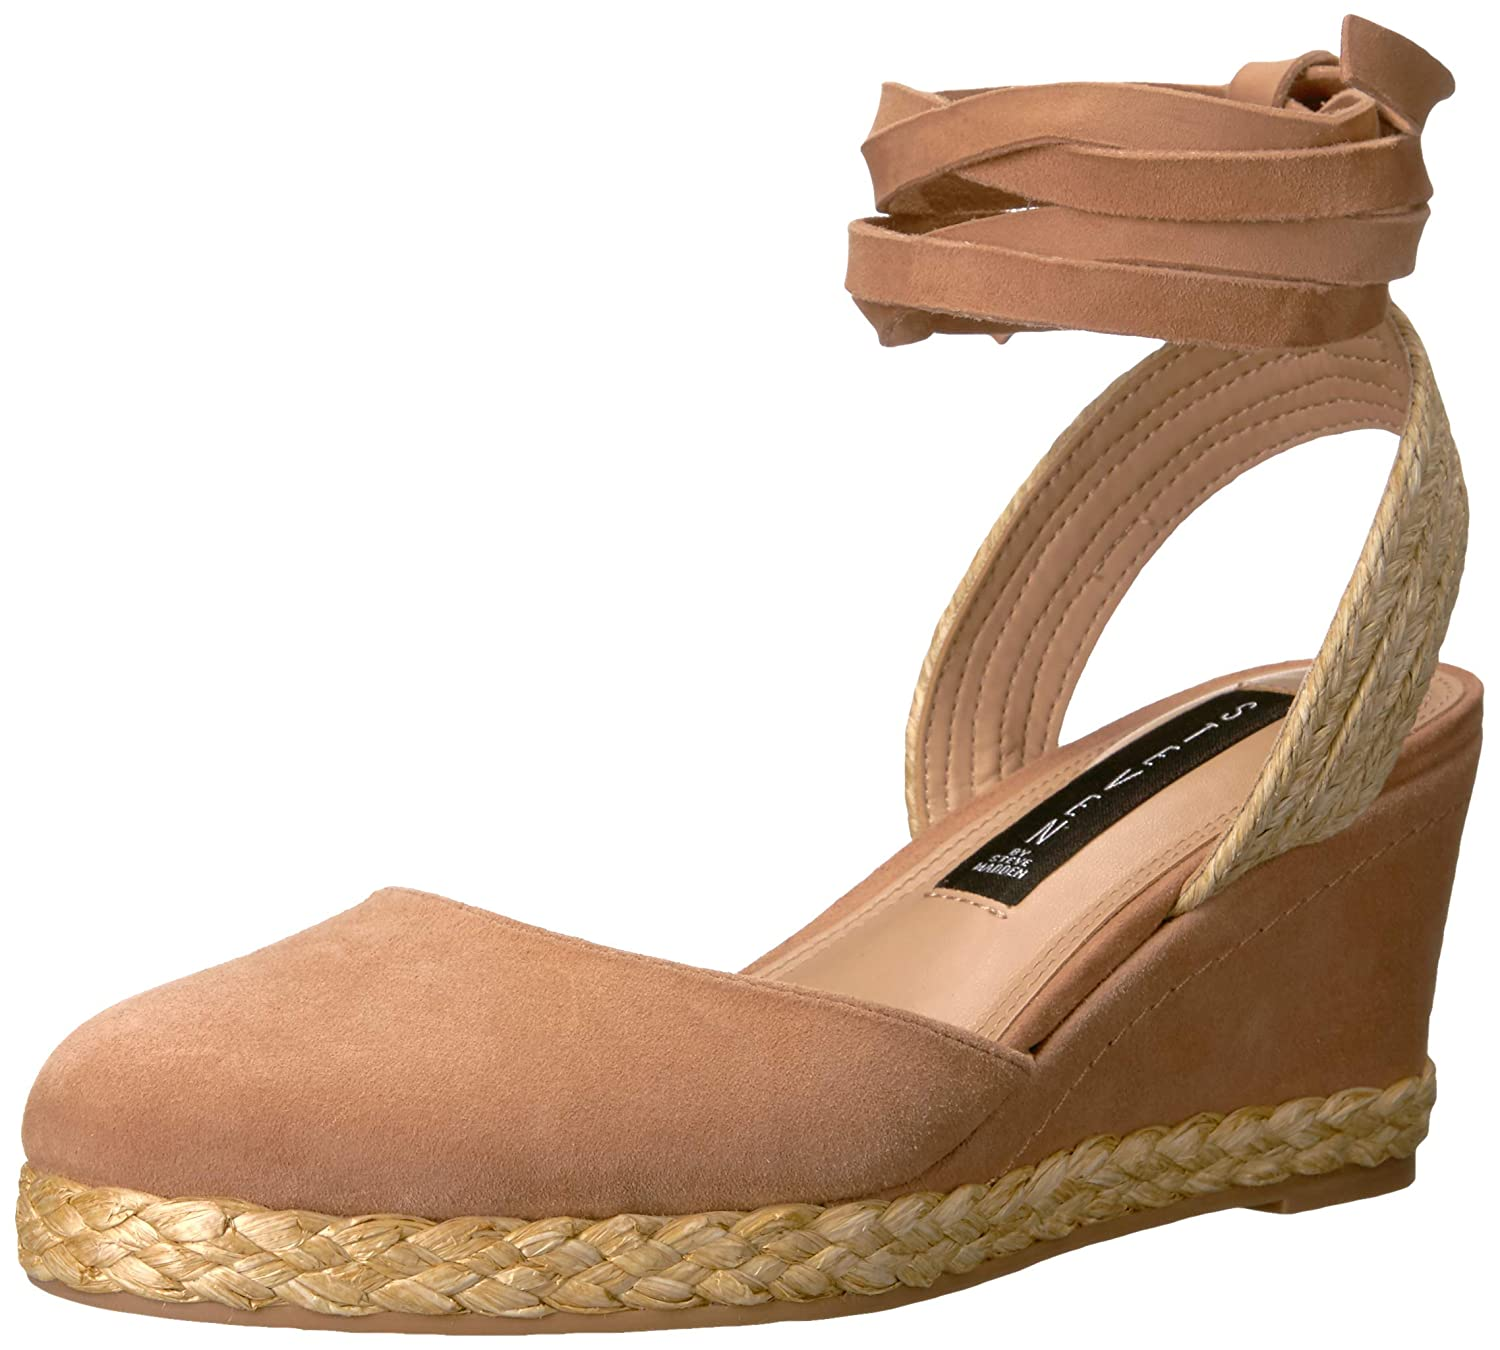 Nude Suede STEVEN by Steve Madden Womens Charly Sandal